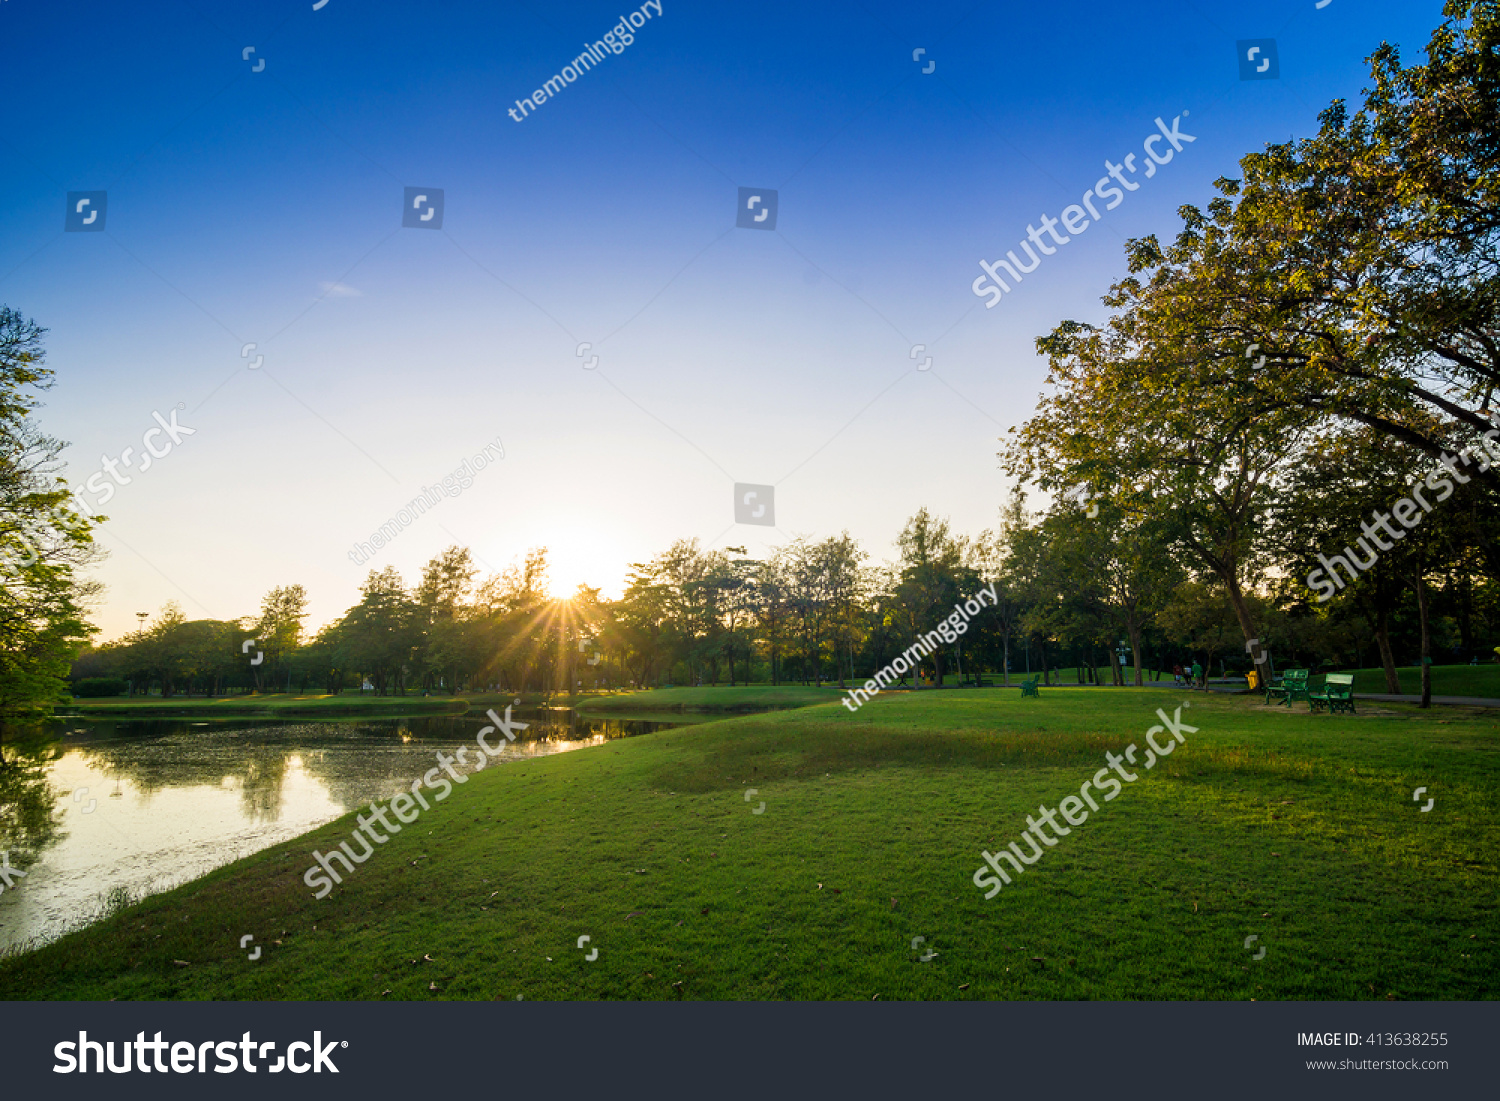 Green trees in beautiful park over blue sky in evening Green garden